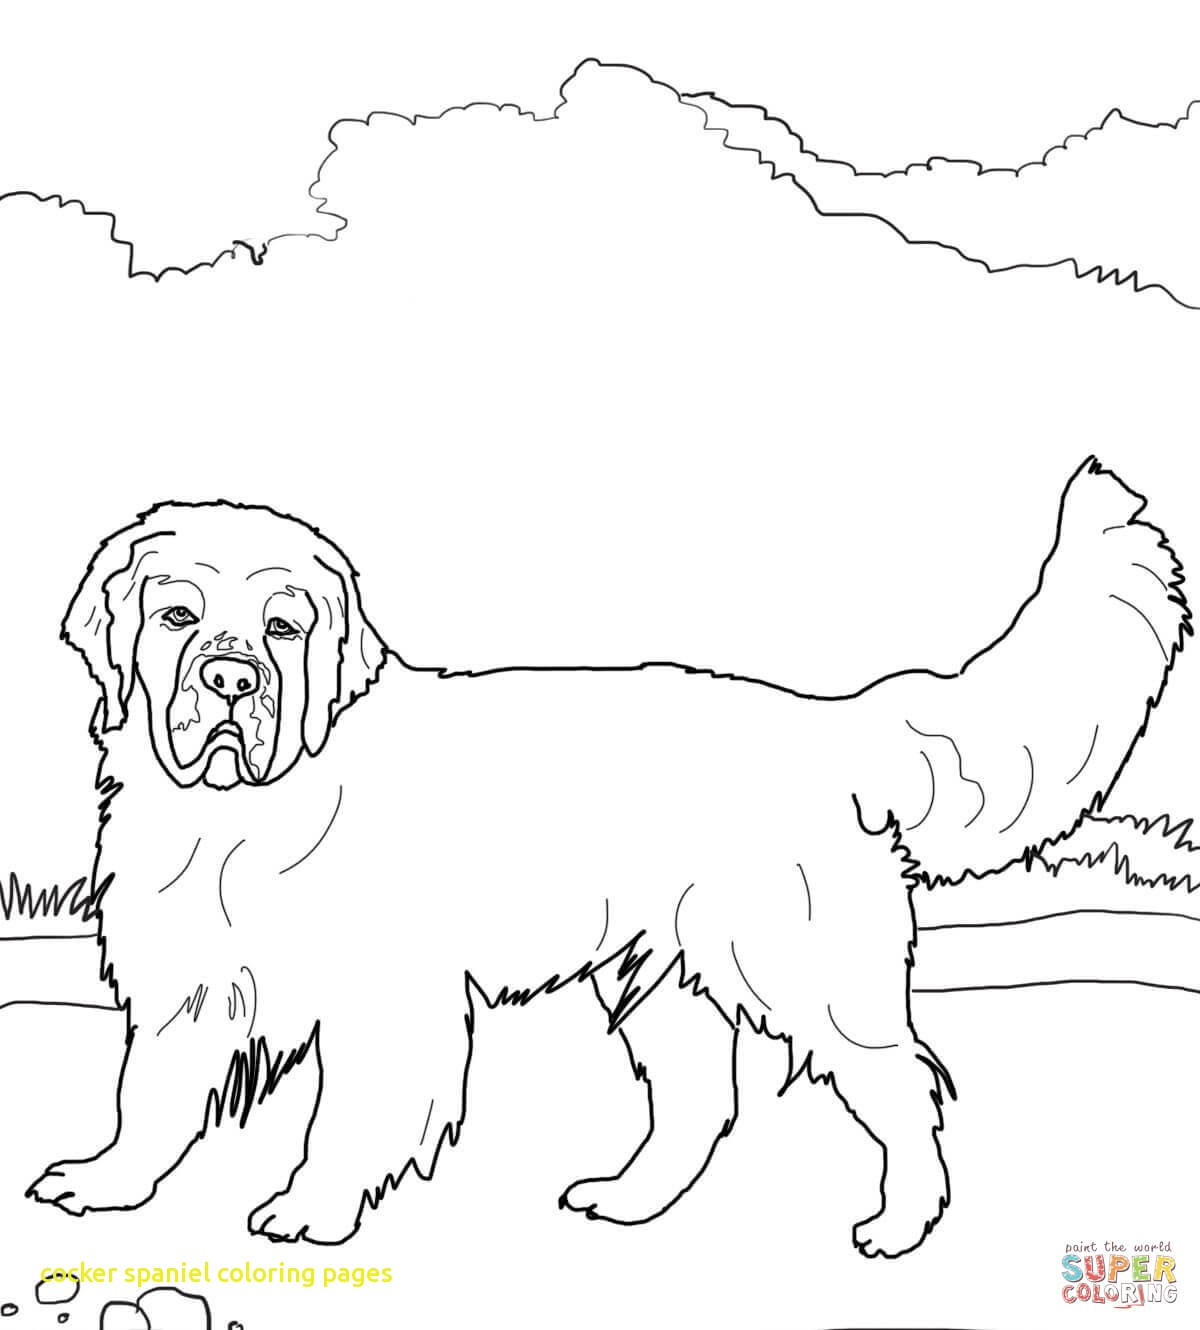 1200x1330 Cocker Spaniel Coloring Pages With Lps Coloring Pages Cocker